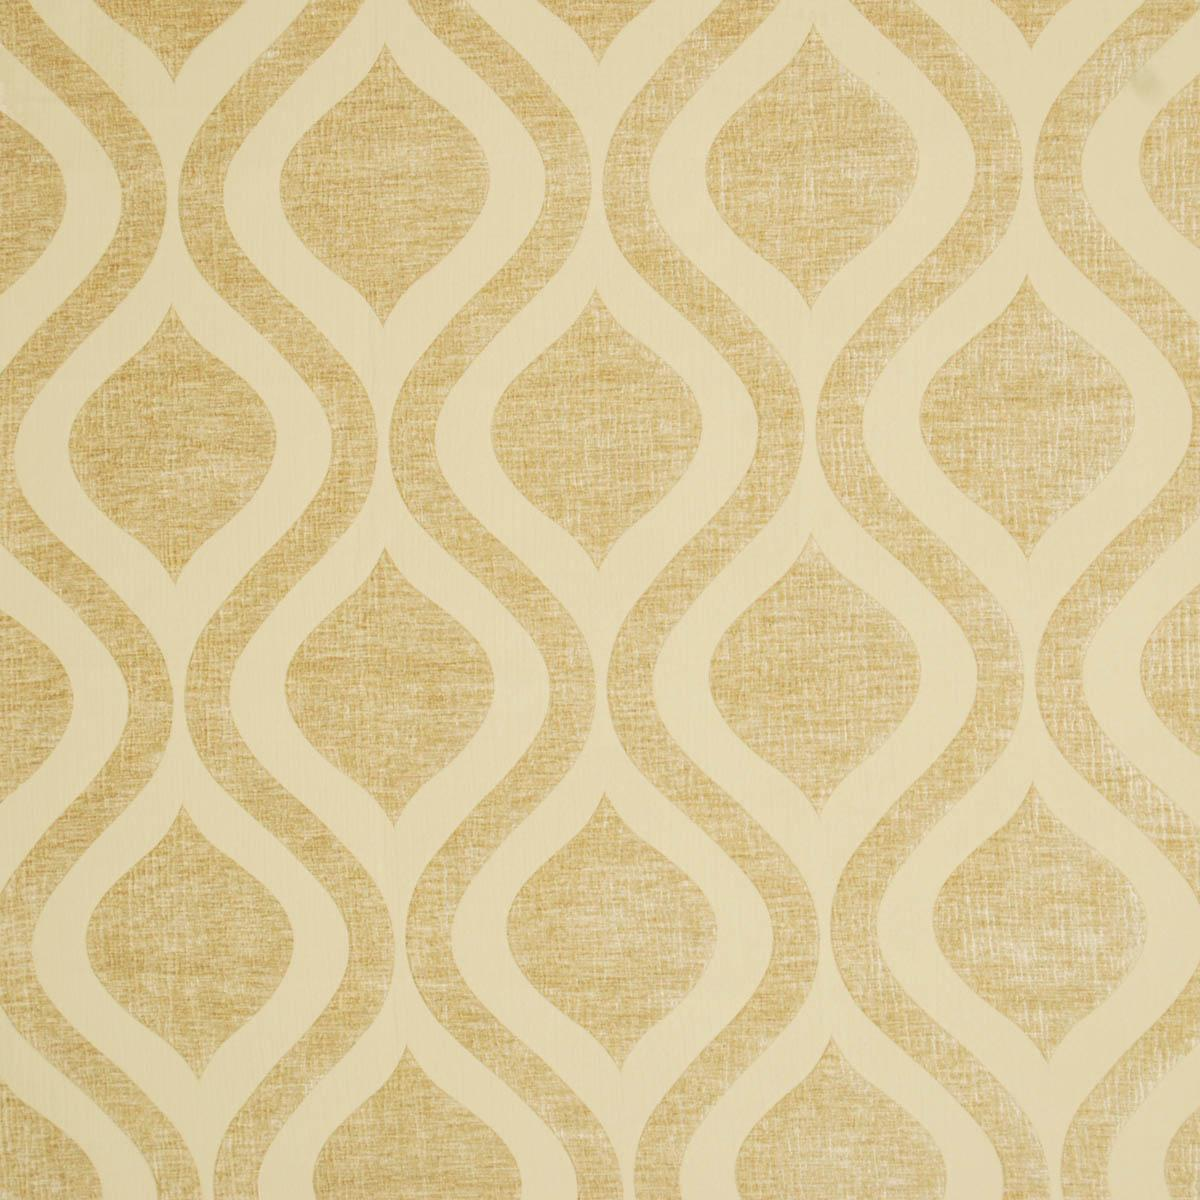 Horizon Curtain Fabric Champagne | Free UK Delivery | Terrys Fabrics